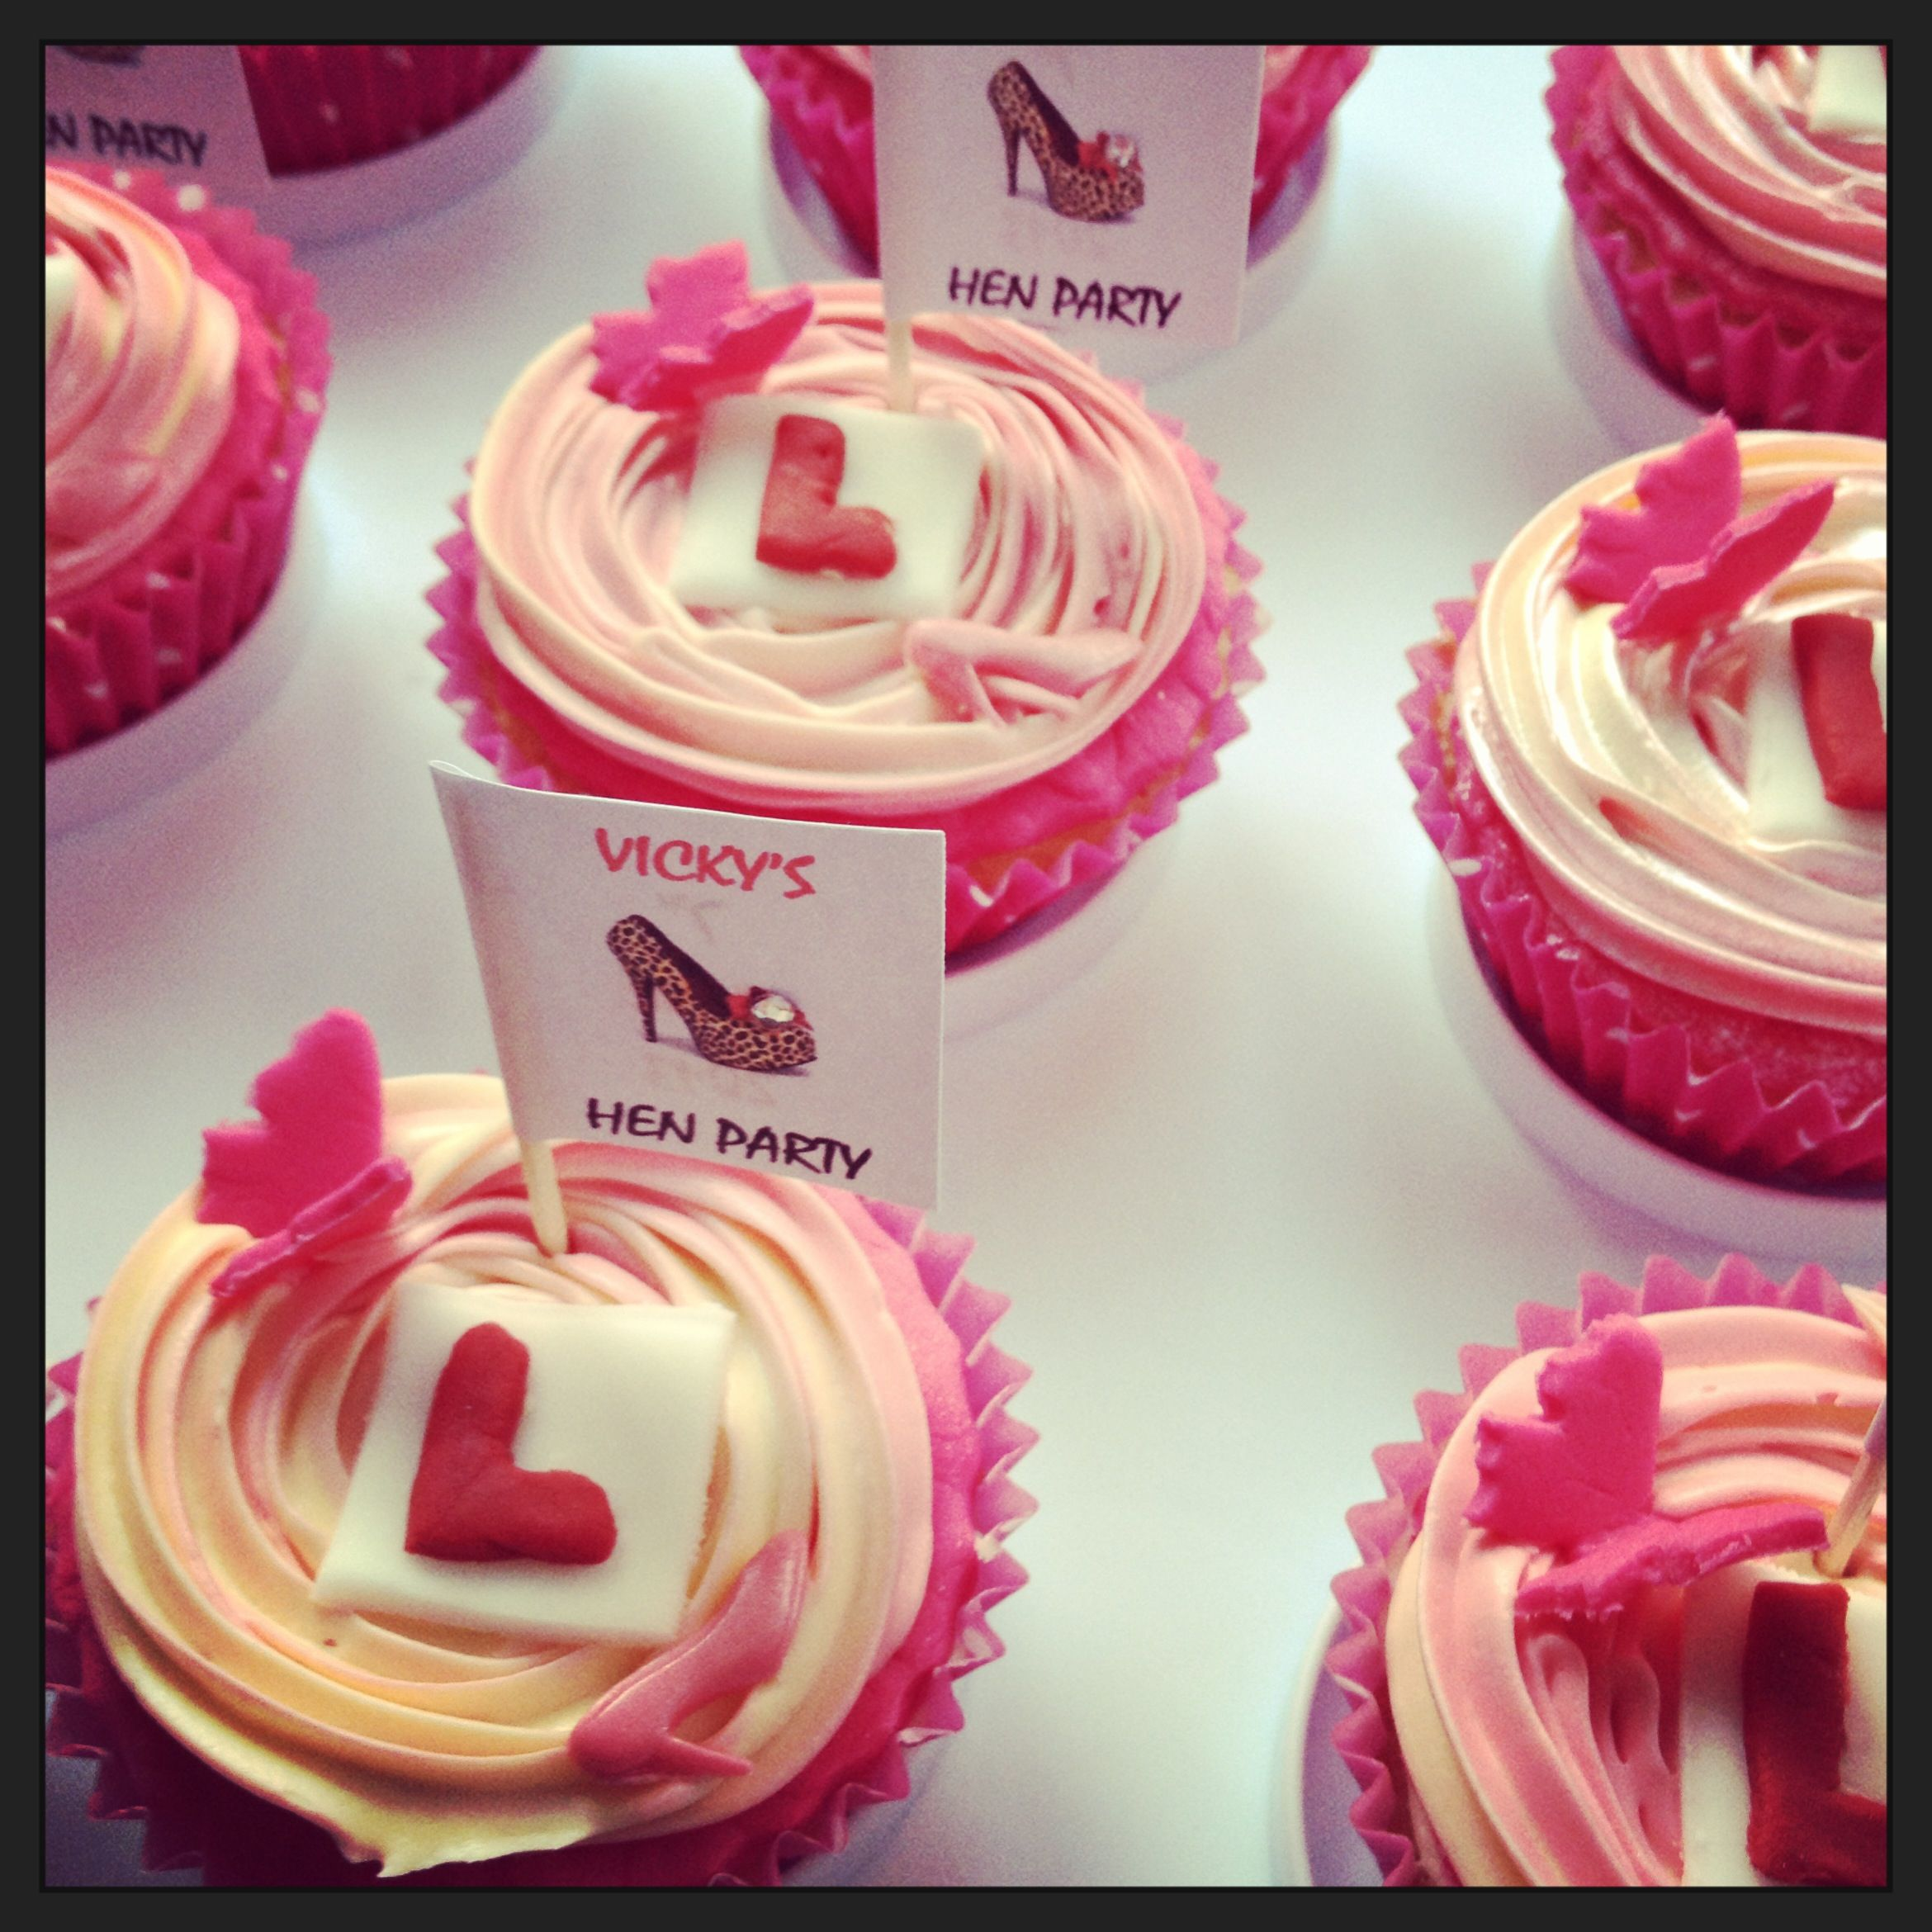 Afternoon Tea Hen Party Ideas: Super Cute Hen Party Cupcakes- Great For Afternoon Tea